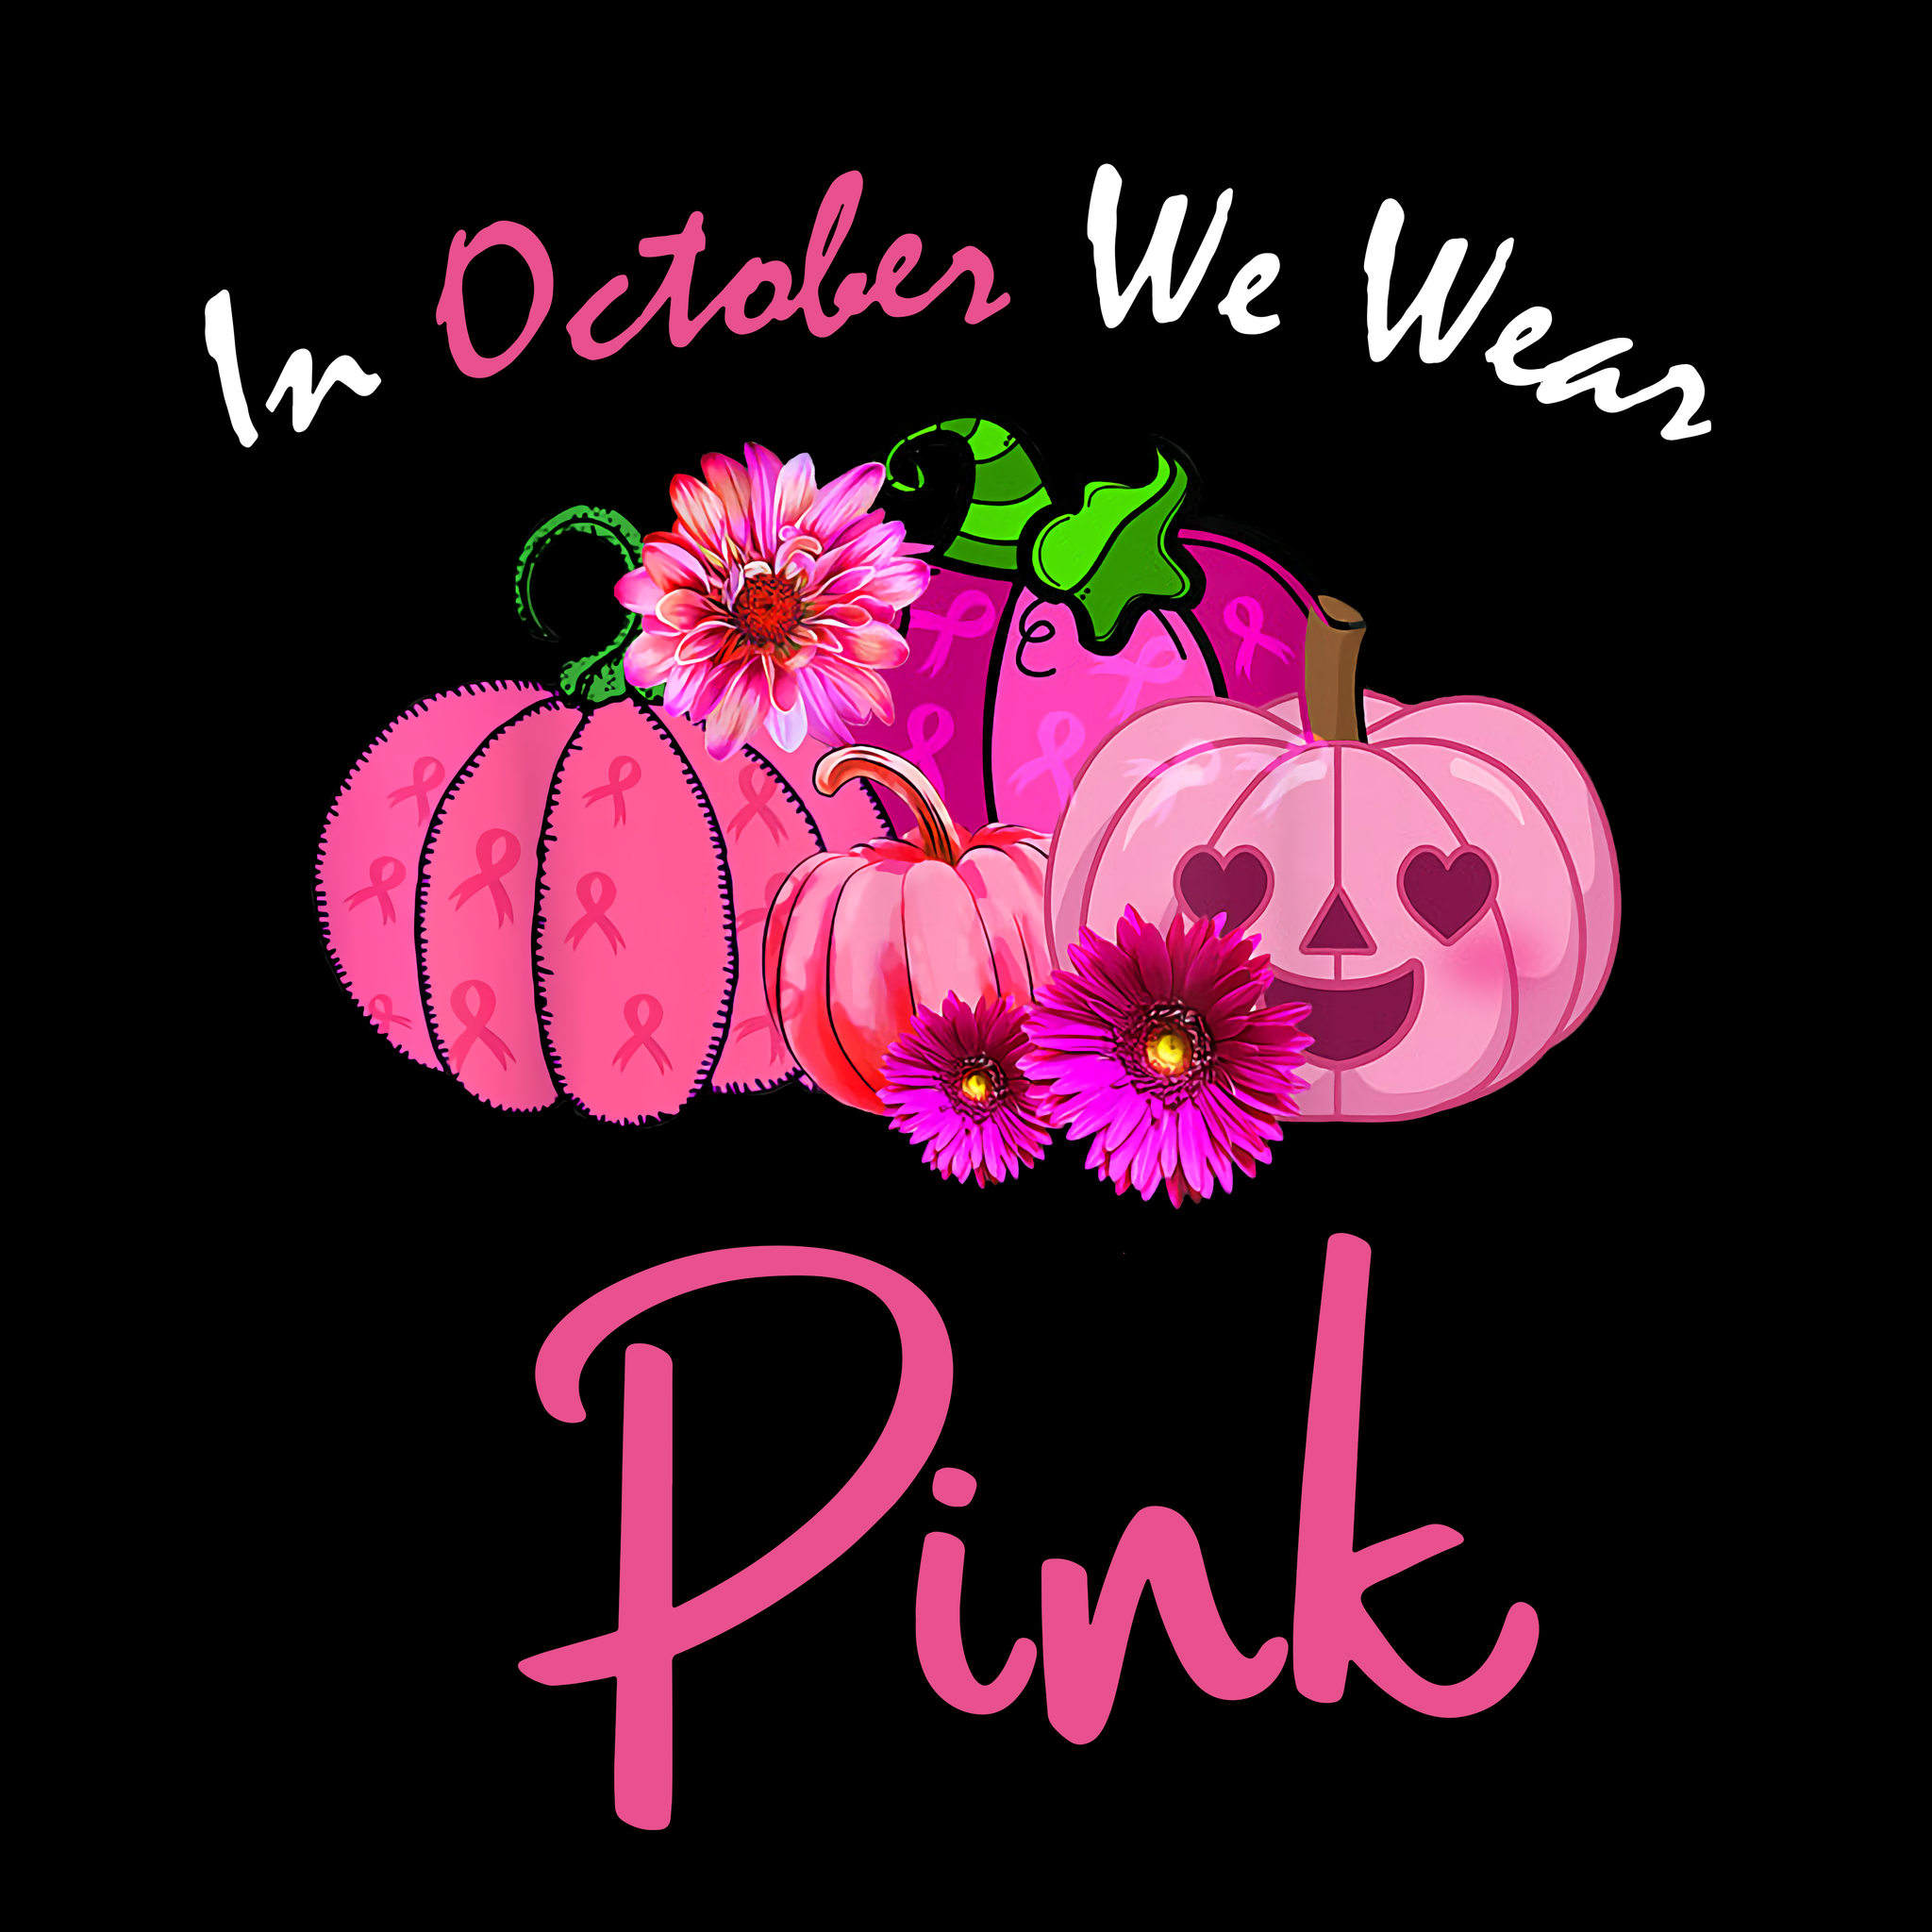 In October We Wear Pink png,In October We Wear Pink, Horror Movies Halloween PNG, Friends Horror Movie Creepy